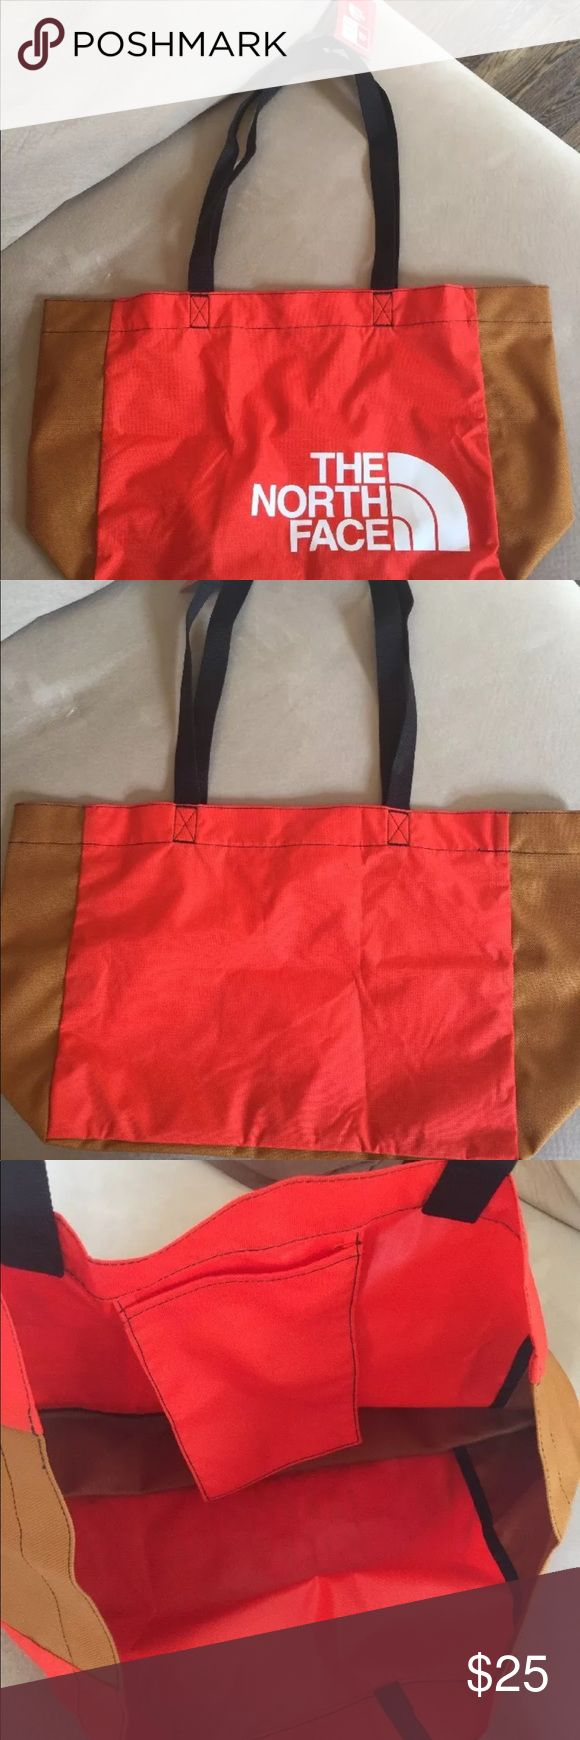 The North Face Large Tote Bag North Face Tote Bag nwt in excellent condition from a smoke free home. This bag came from an outlet store so it has no warranty. Extremely roomy. Color is a bright orange and brown. Make offer! The North Face Bags Totes